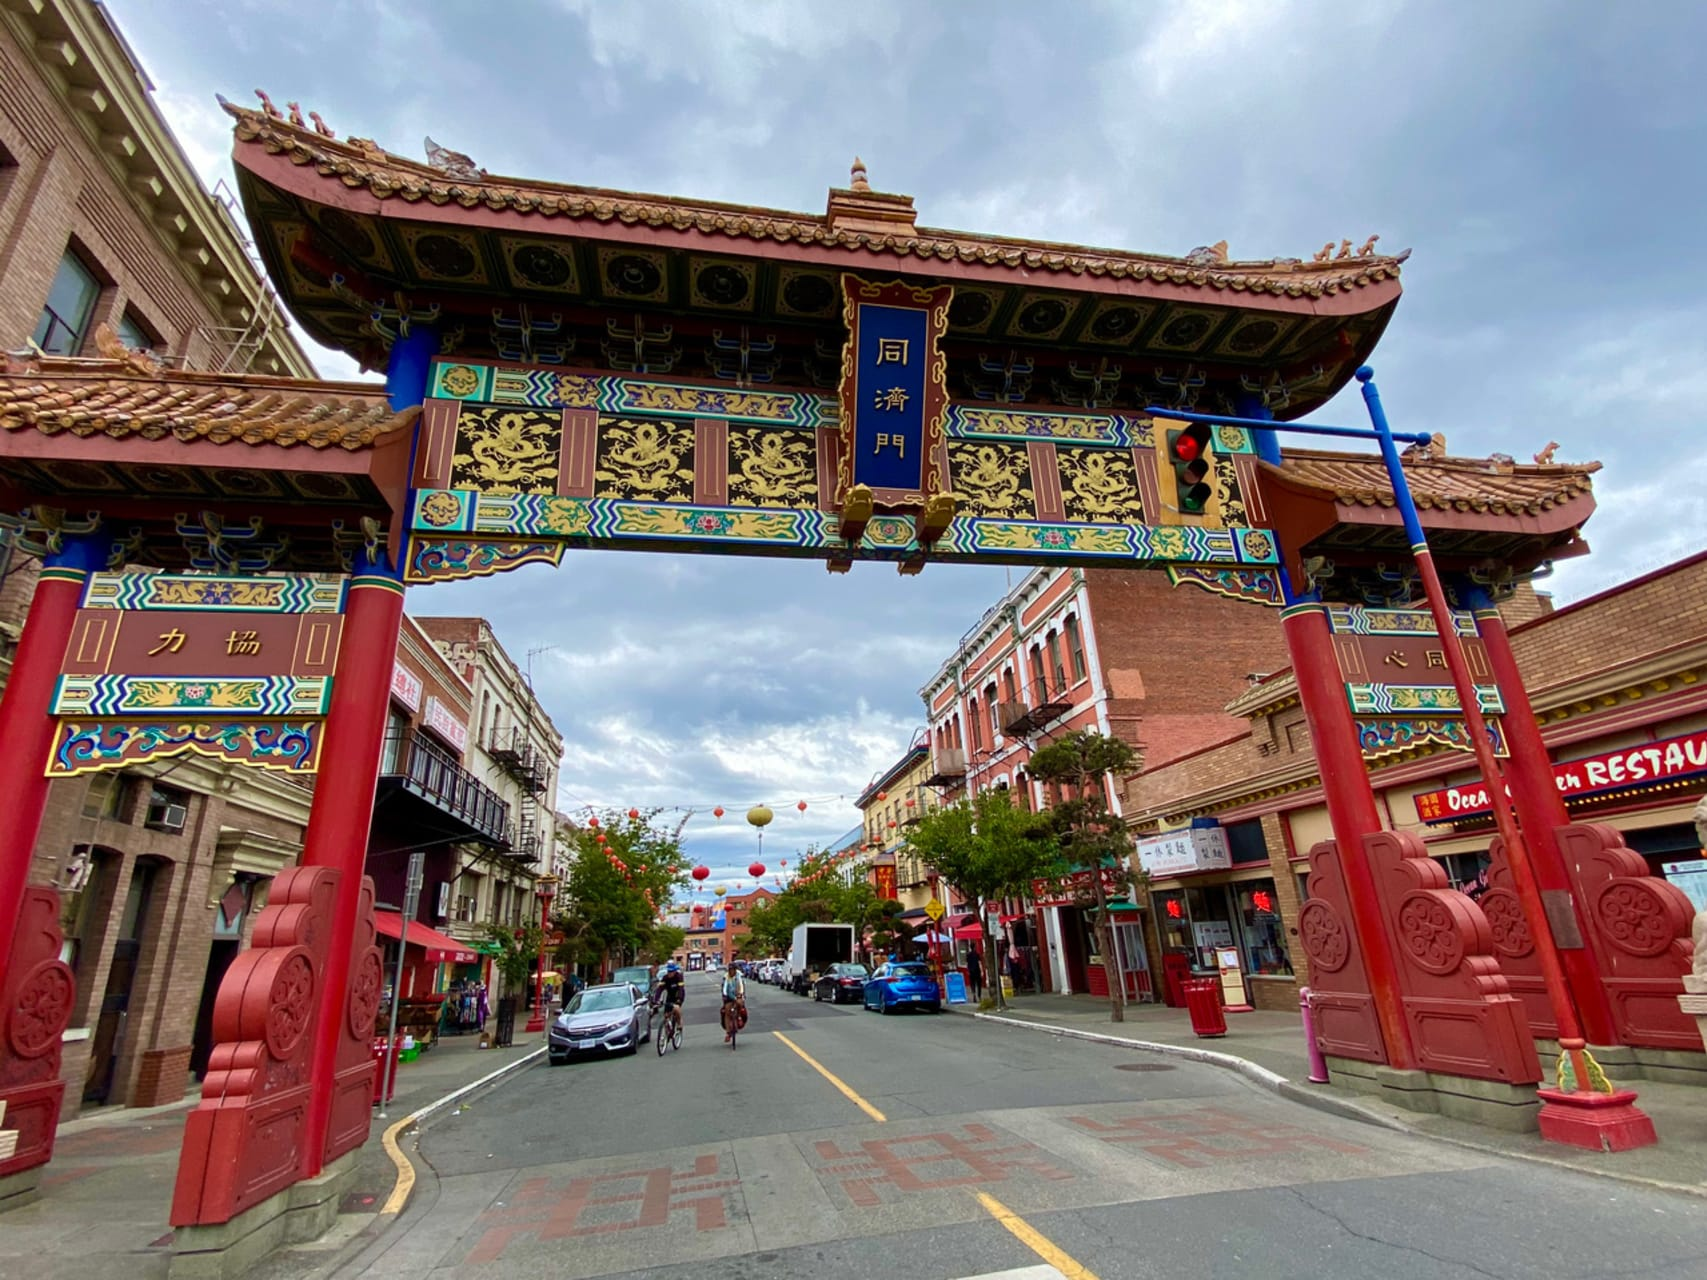 Victoria - Oldest China Town in Canada and Victoria's Old Town